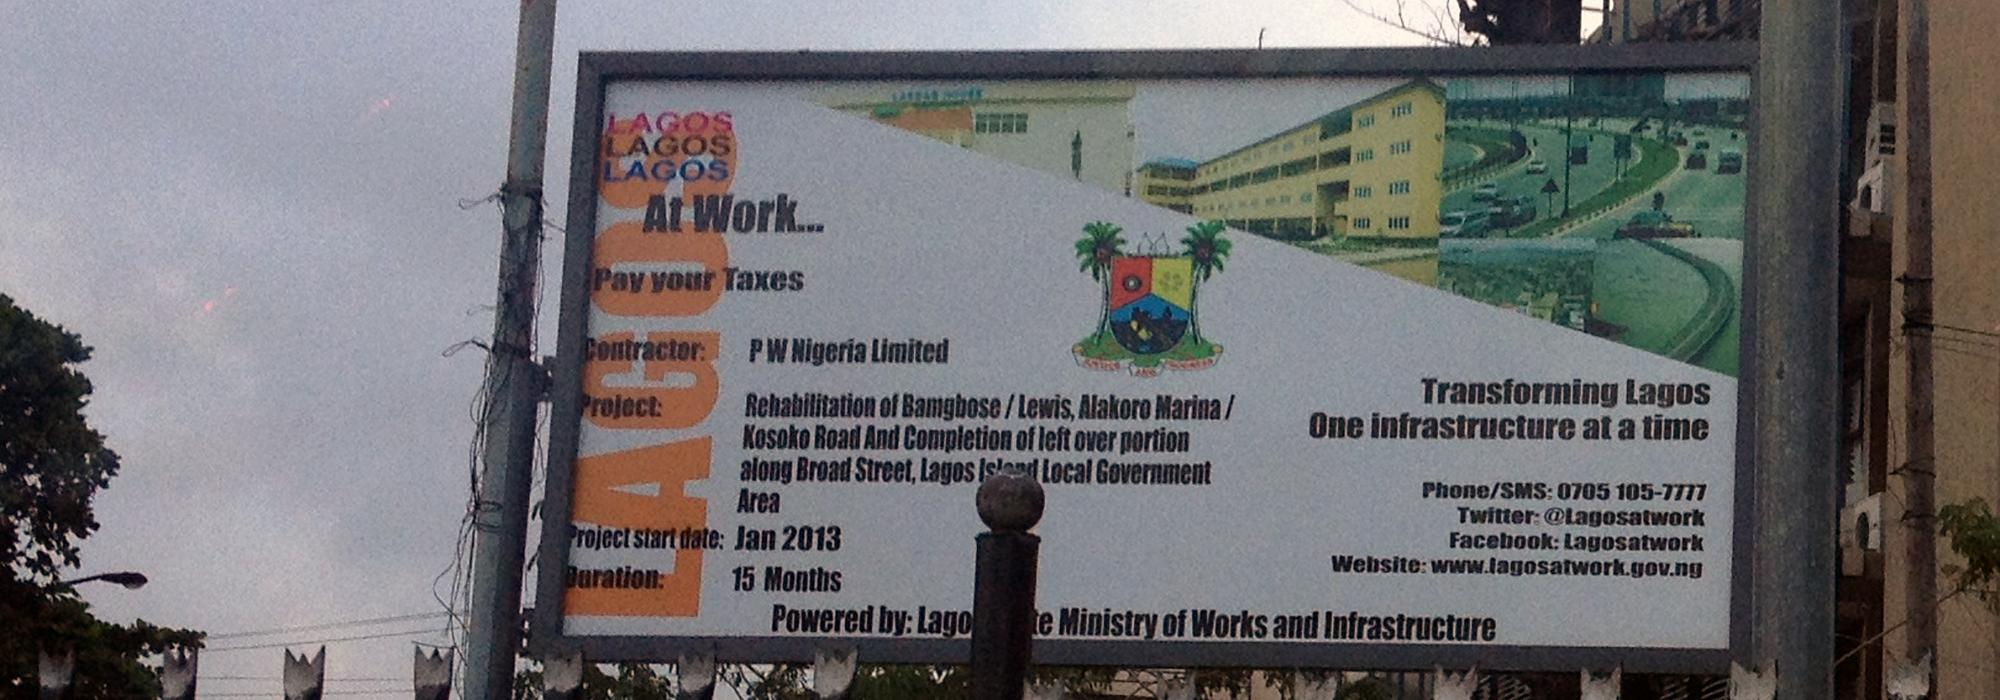 Pay Your Taxes sign in Lagos, Nigeria